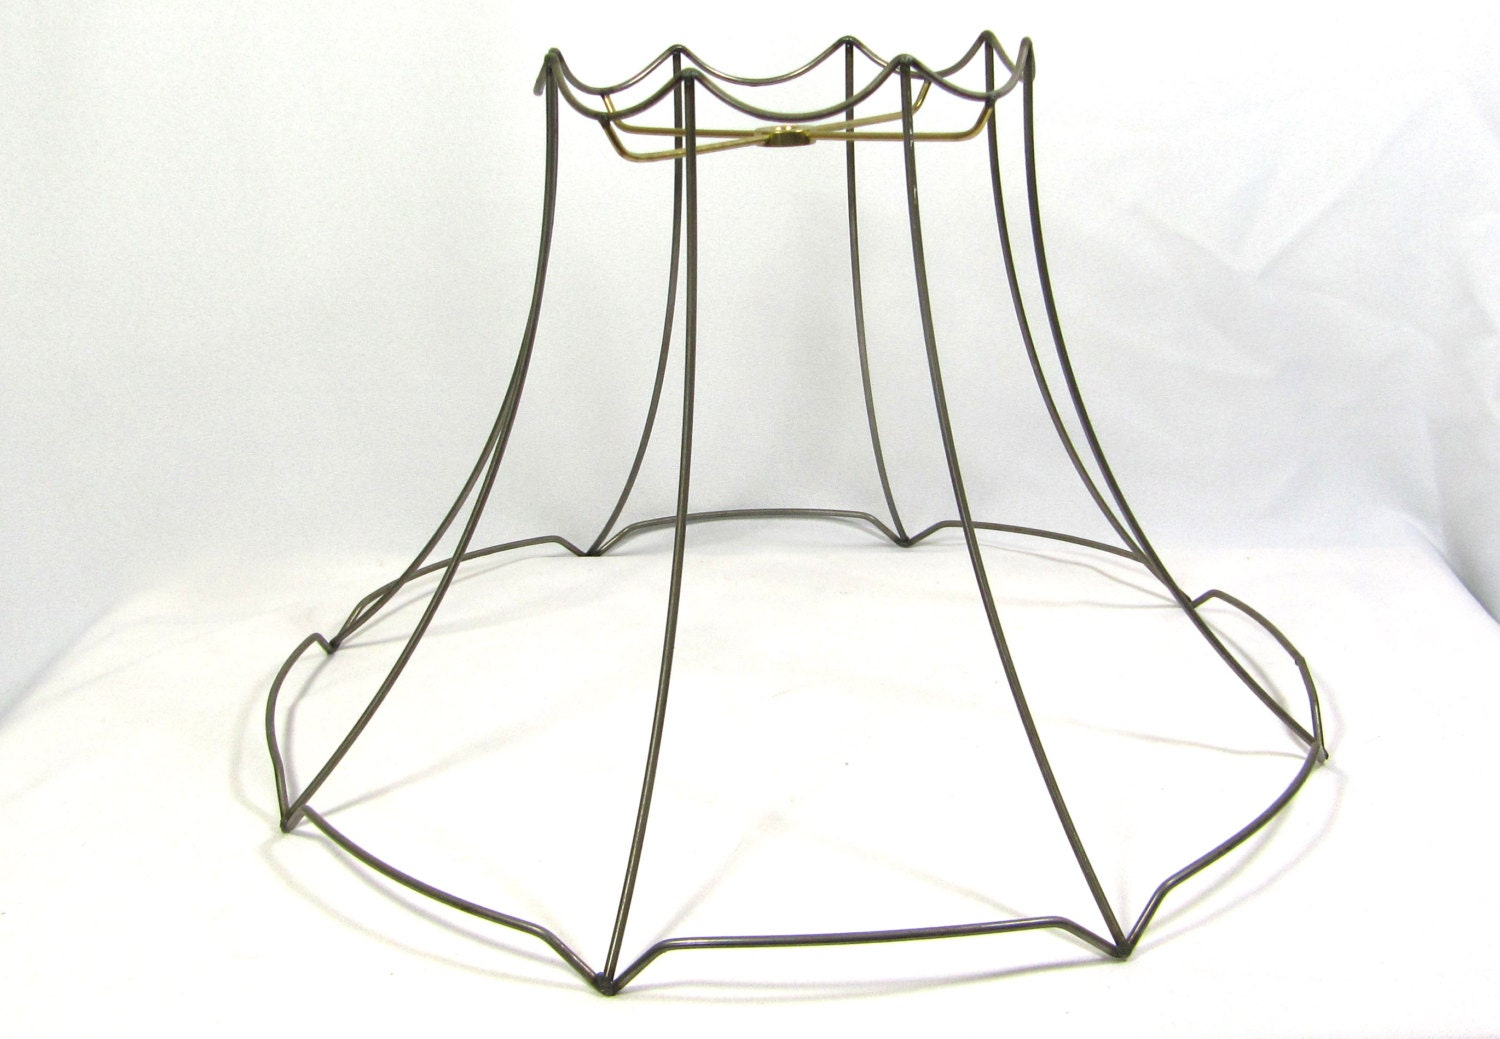 L shade frame supplies 28 images unique l shade frame wire l shade frame supplies l shade frame for floor hanging l round bell l shade frame supplies mozeypictures Image collections